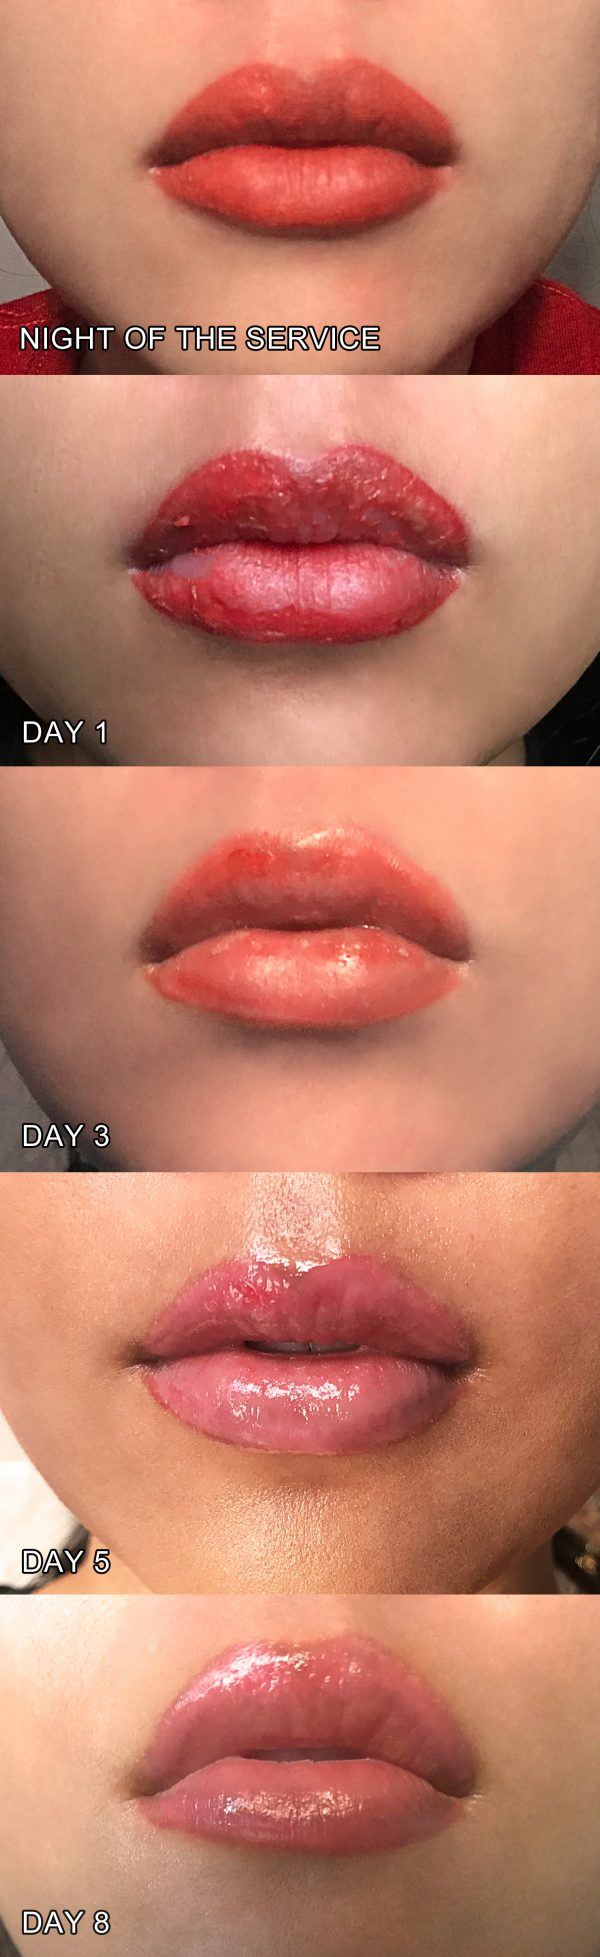 Lip tattoo: photo before and after, reviews, techniques, healing, effects 91